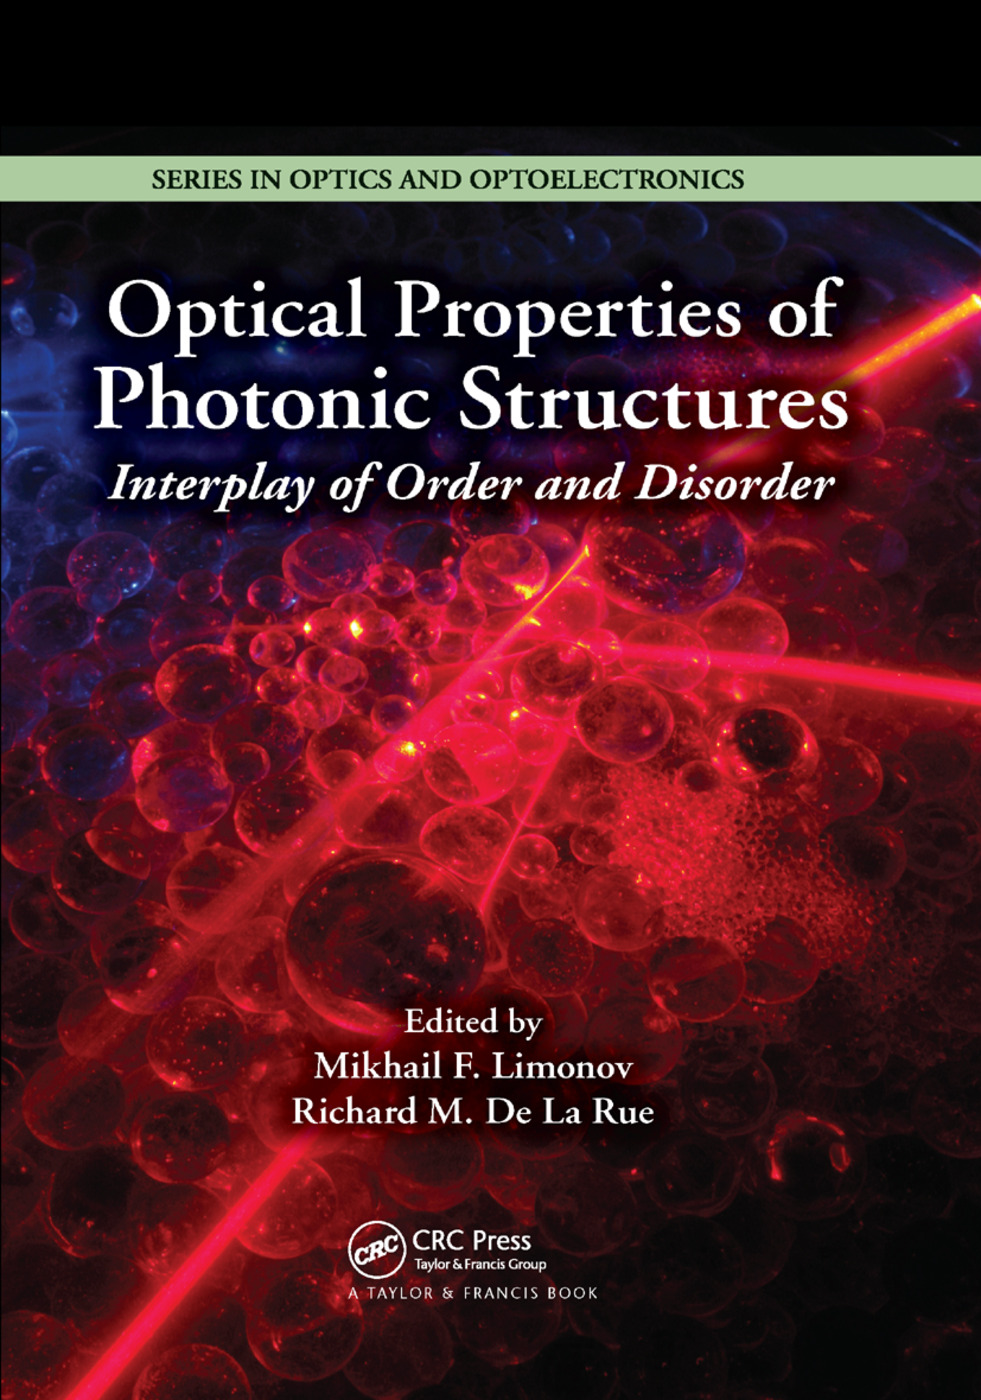 Optical Properties of Photonic Structures